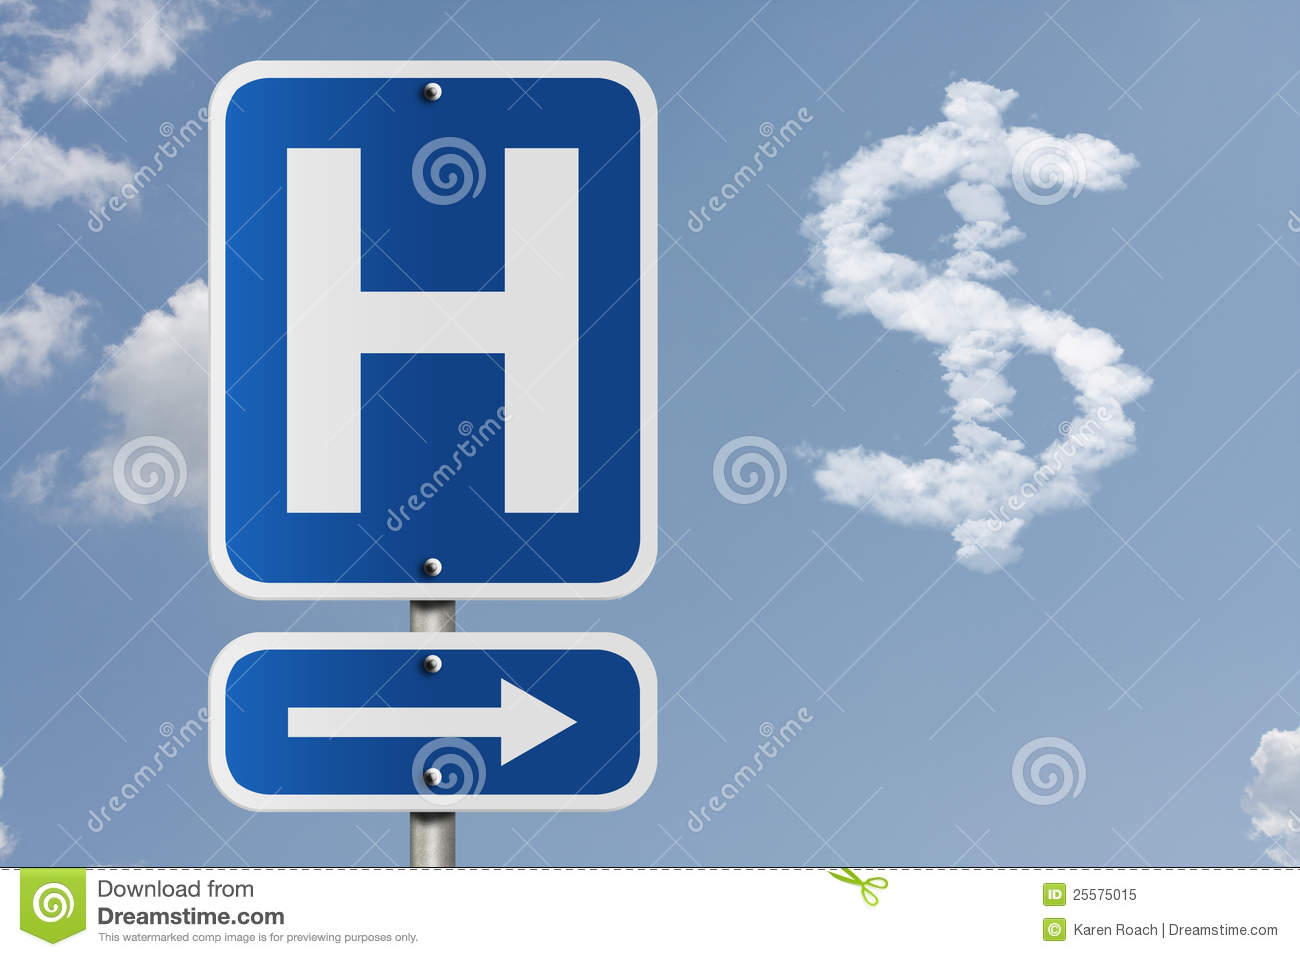 Cost of going to the hospital